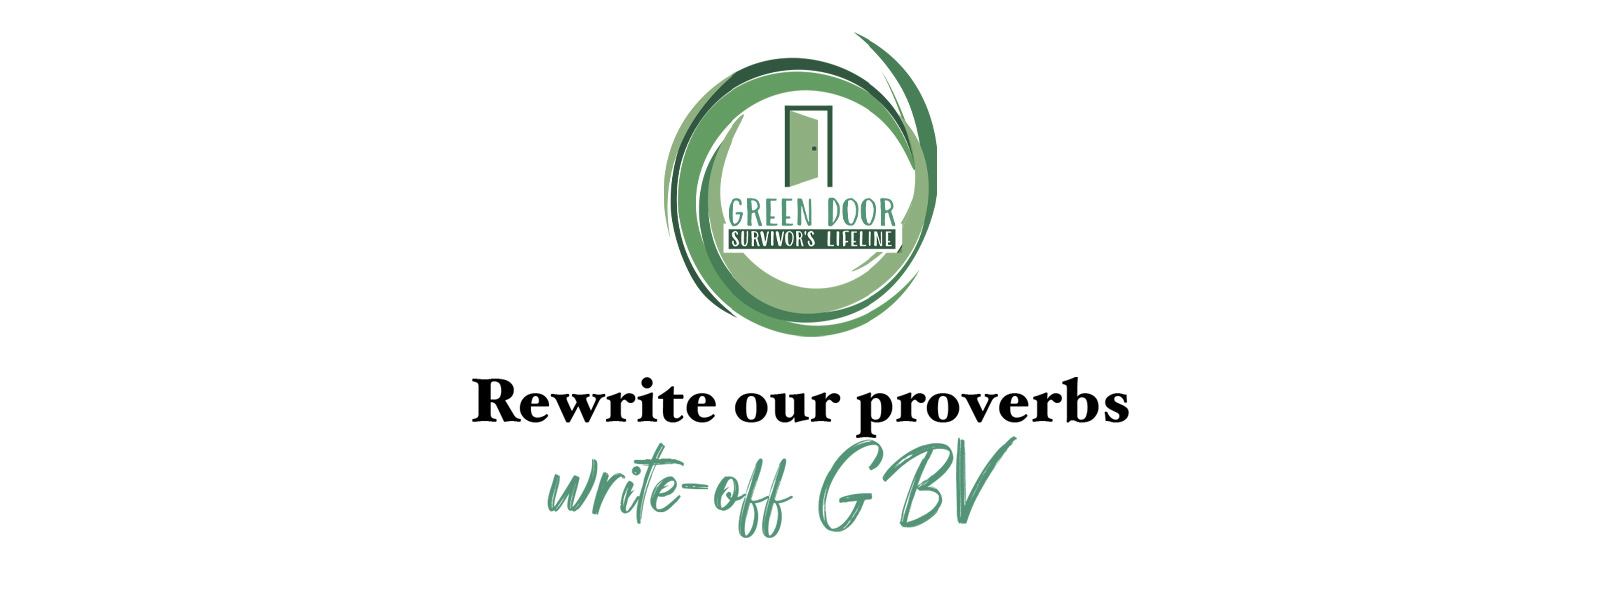 Green Door Women's Shelter rewrites African proverbs to shift the narrative on gender-based violence.